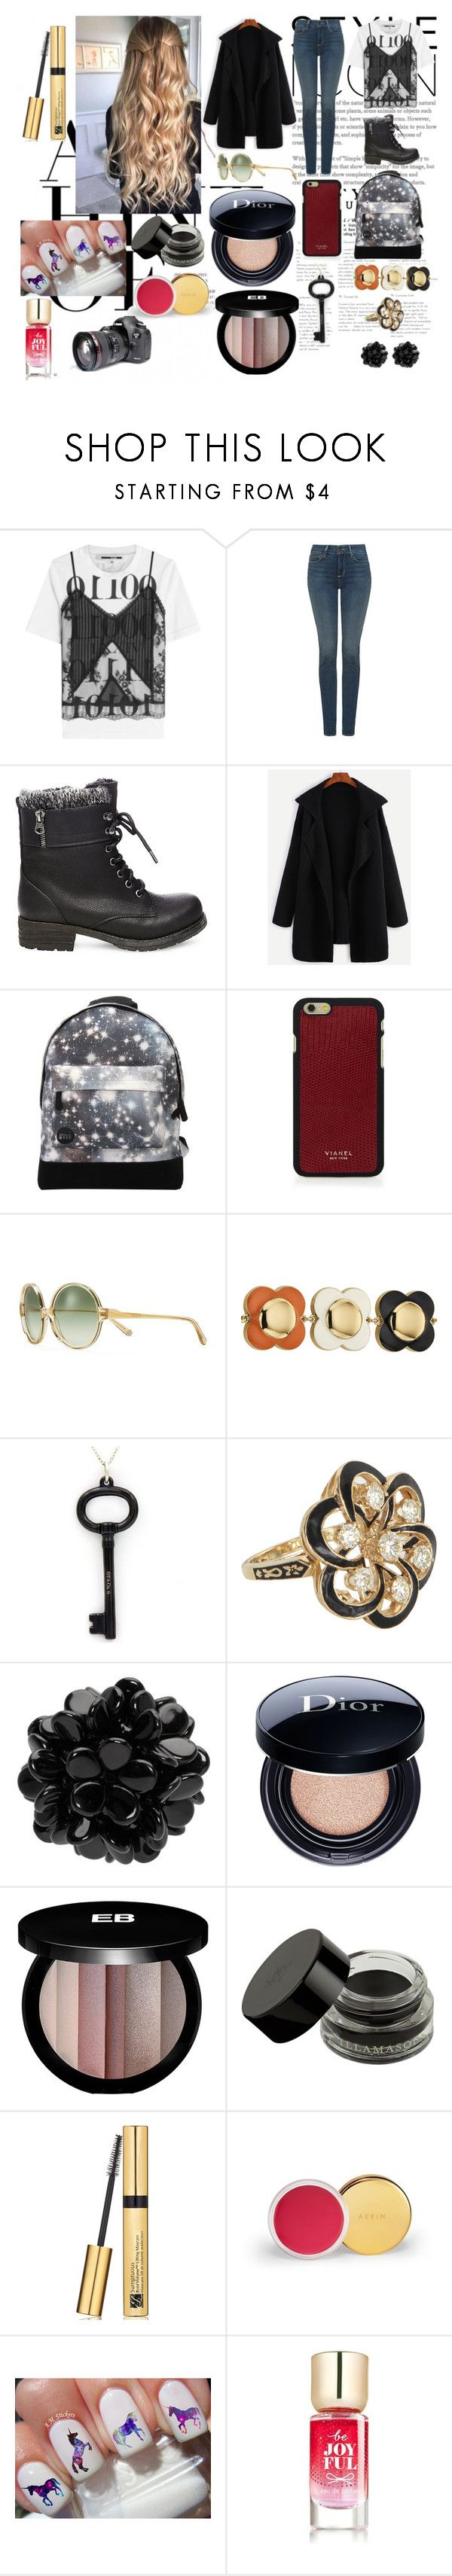 """Benefit."" by it-srabina ❤ liked on Polyvore featuring McQ by Alexander McQueen, NYDJ, Steve Madden, Mi-Pac, Vianel, Tory Burch, Orla Kiely, Tiffany & Co., Vintage and Simone Rocha"